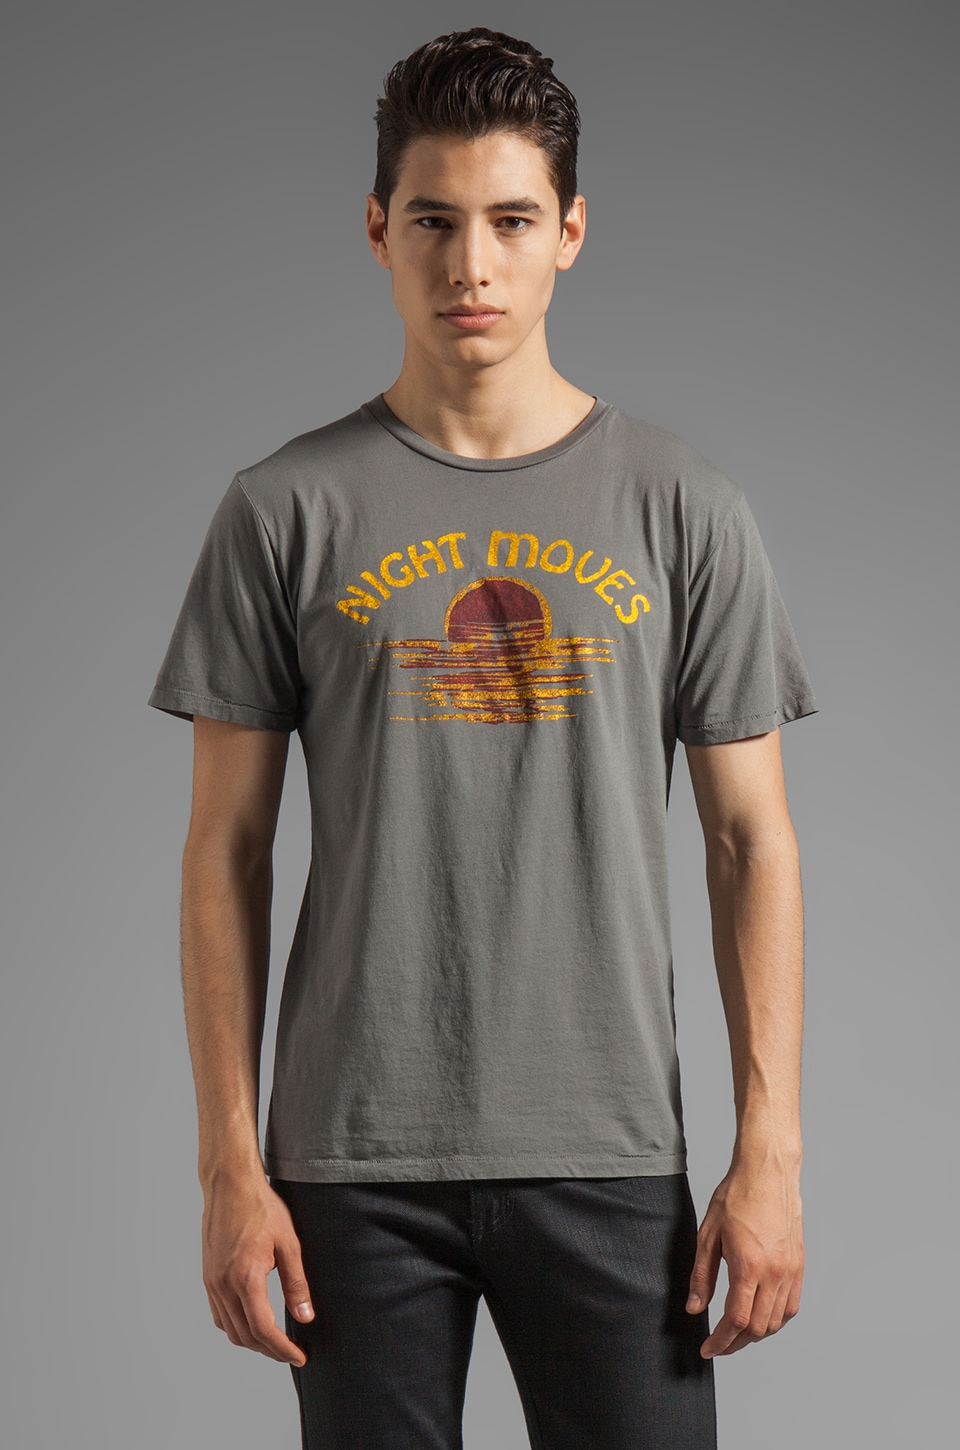 BLOOD IS THE NEW BLACK Nigh Moves MC Tee in Charcoal Grey